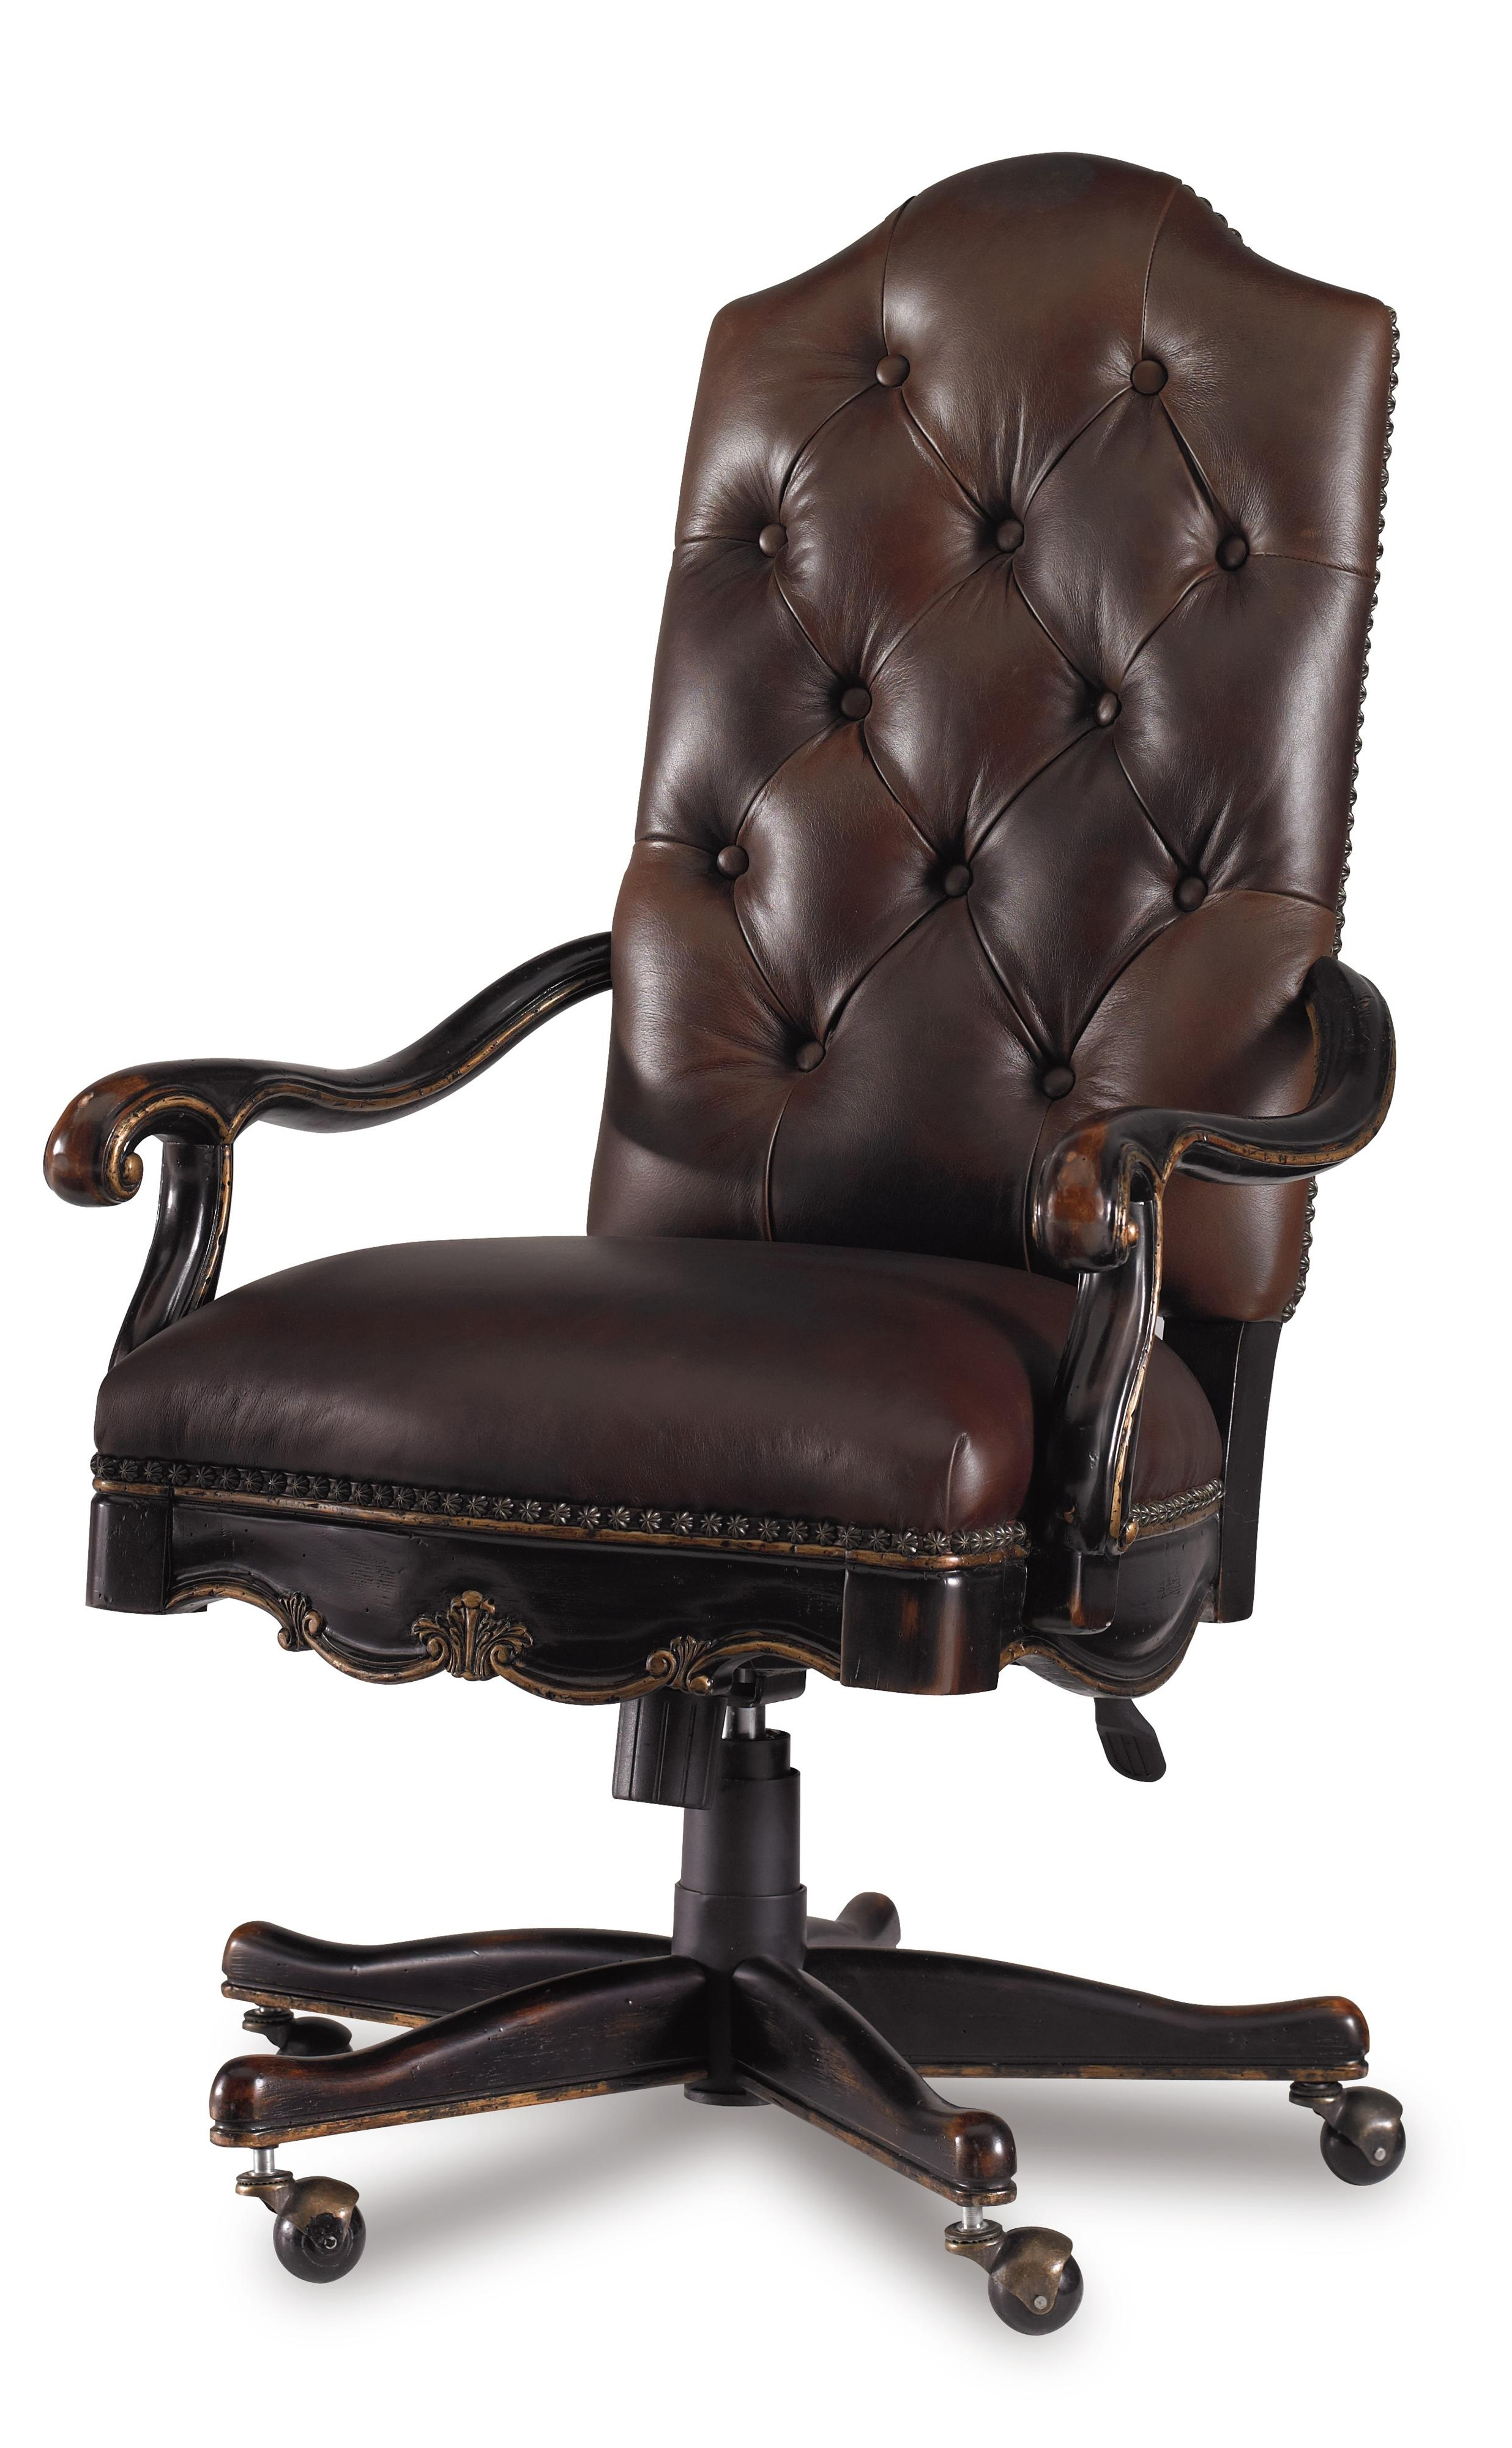 Executive Office Side Chairs In Well Known Furniture : Brown Leather Office Chair Luxury Office Chairs High (Gallery 11 of 20)